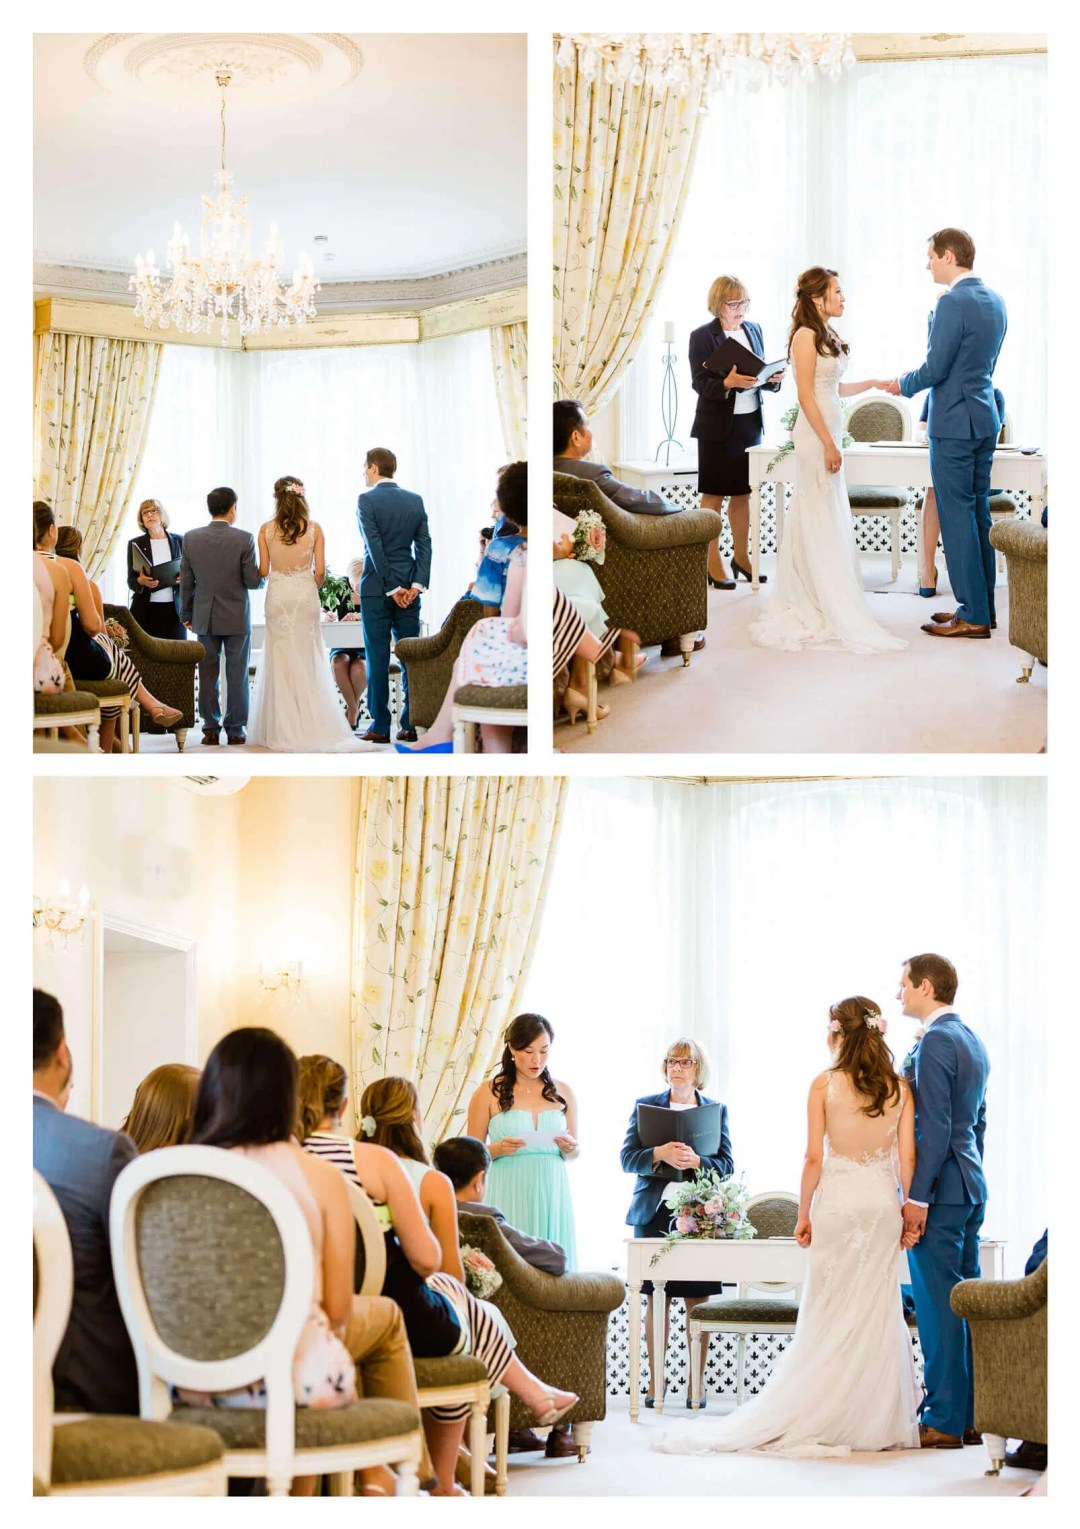 The Mansion House wedding ceremony venue in Tunbridge Wells | Kent wedding photographer